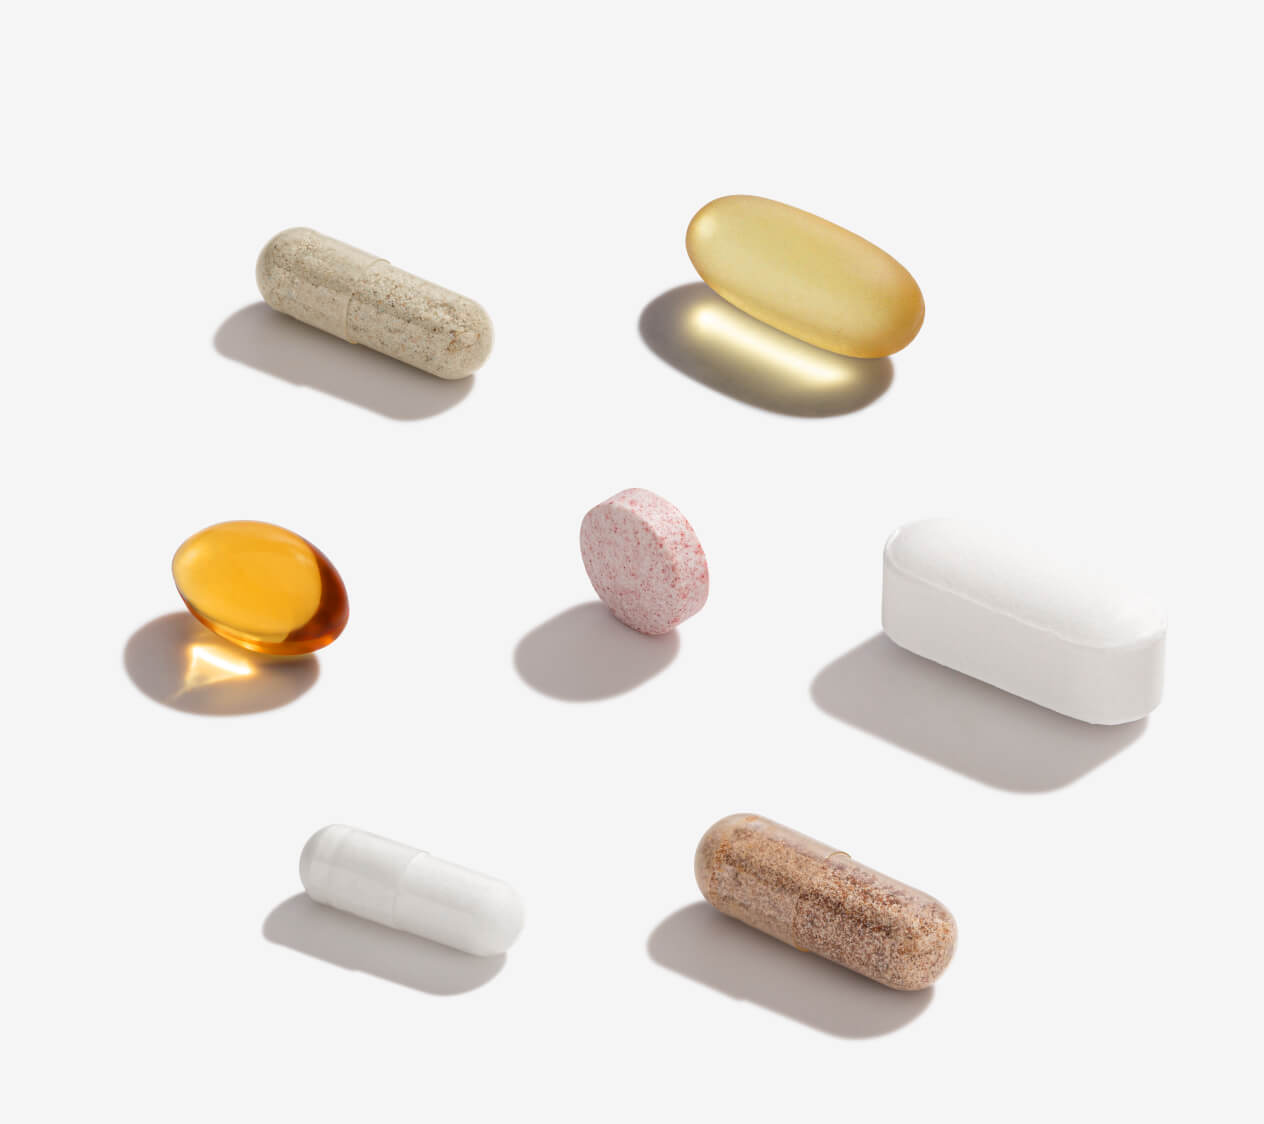 7 supplements lined up on a light background